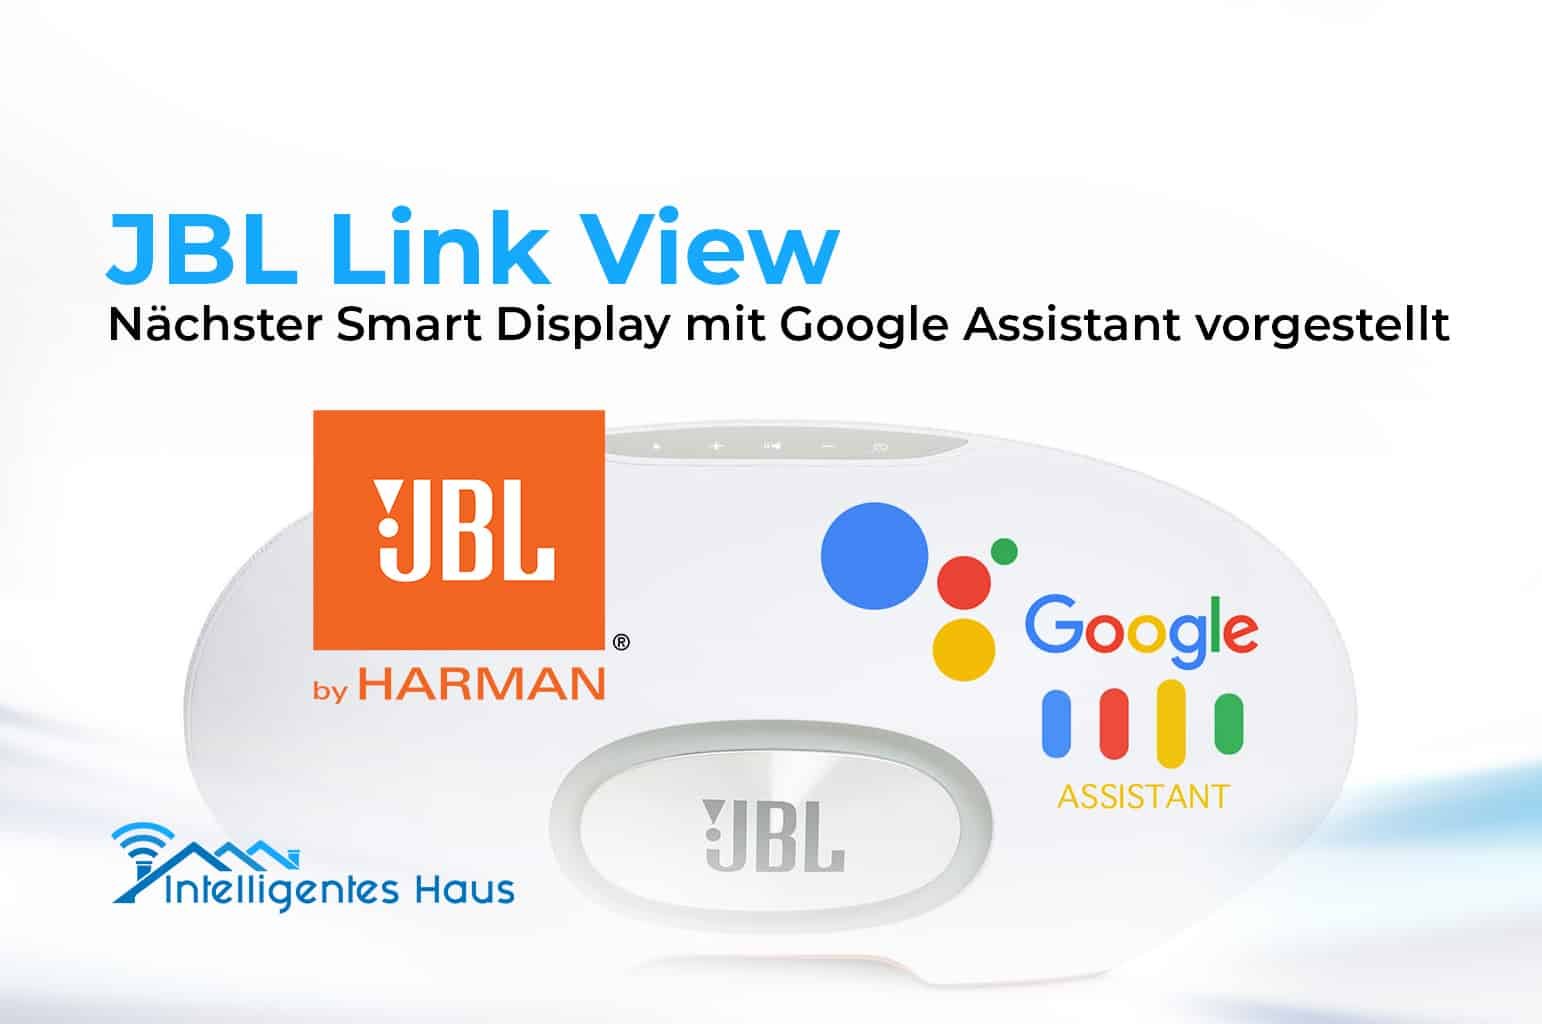 zweiter smart display jbl link view mit google assistant. Black Bedroom Furniture Sets. Home Design Ideas